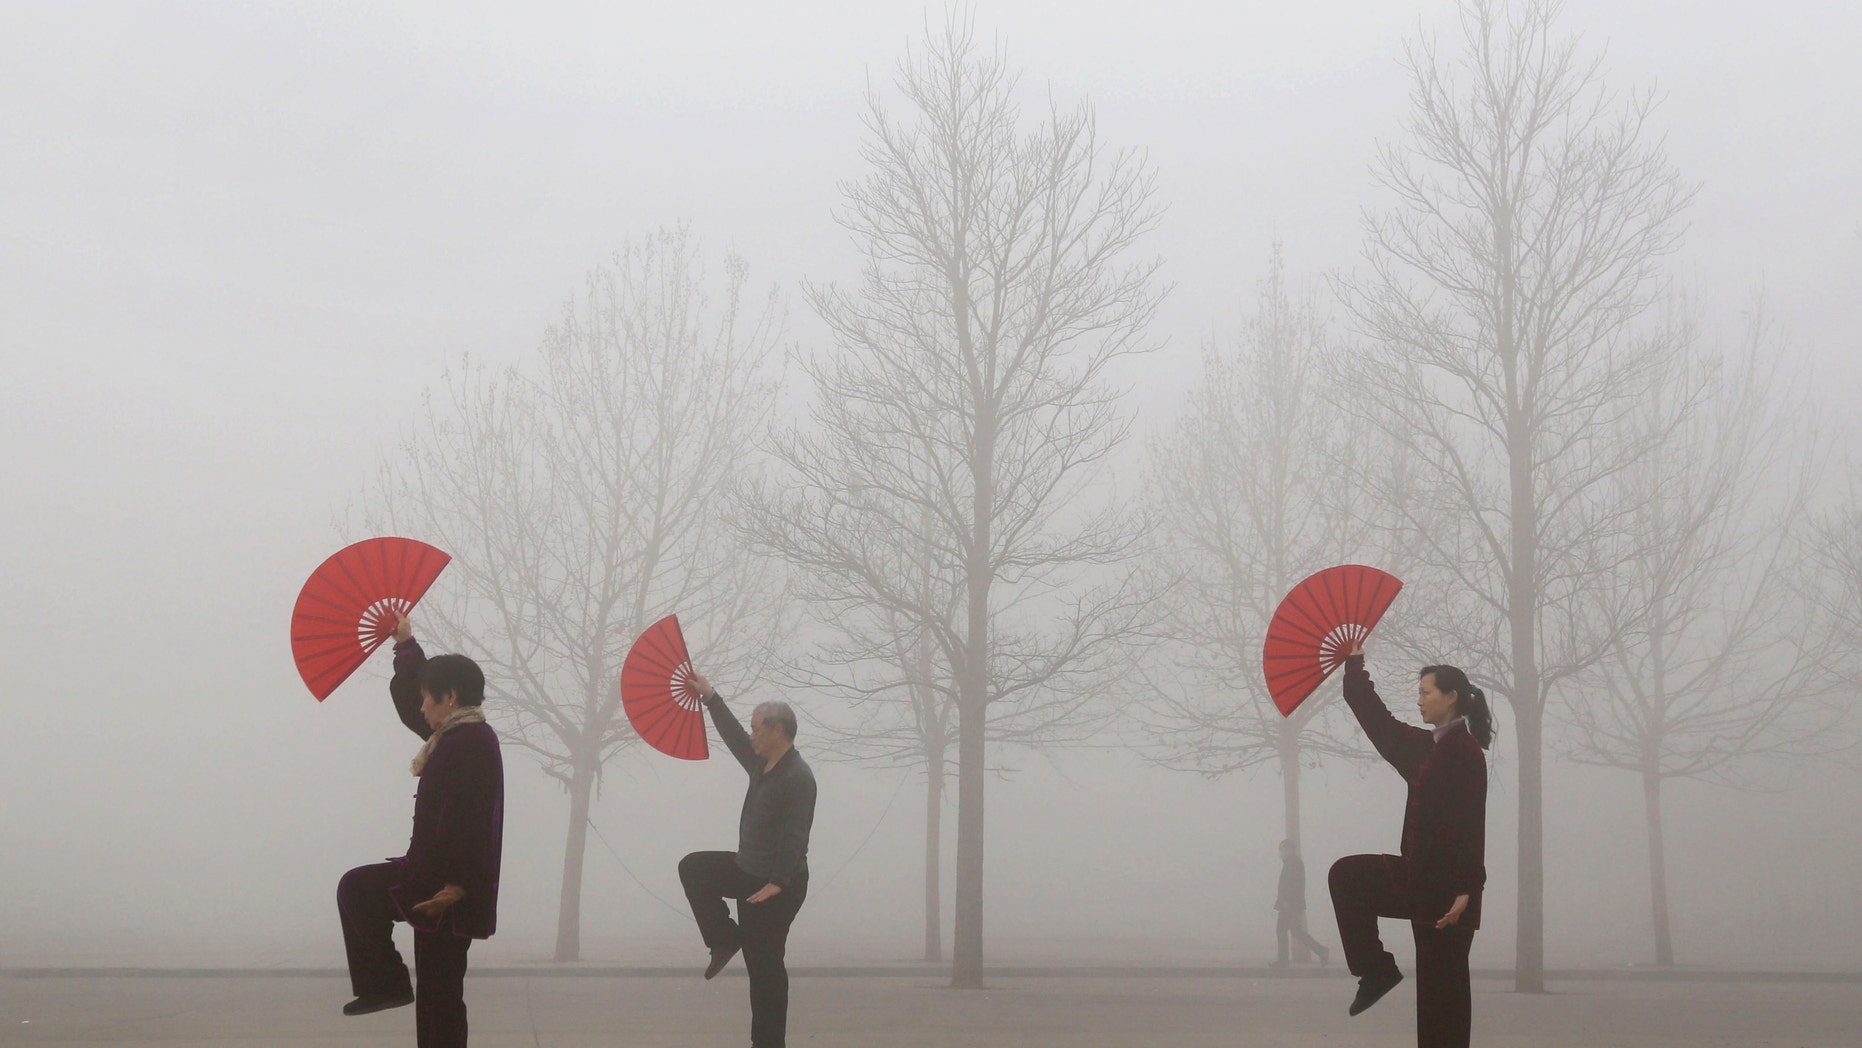 March 16, 2015: People do morning exercises on a polluted day in Jiaozuo, Henan province.